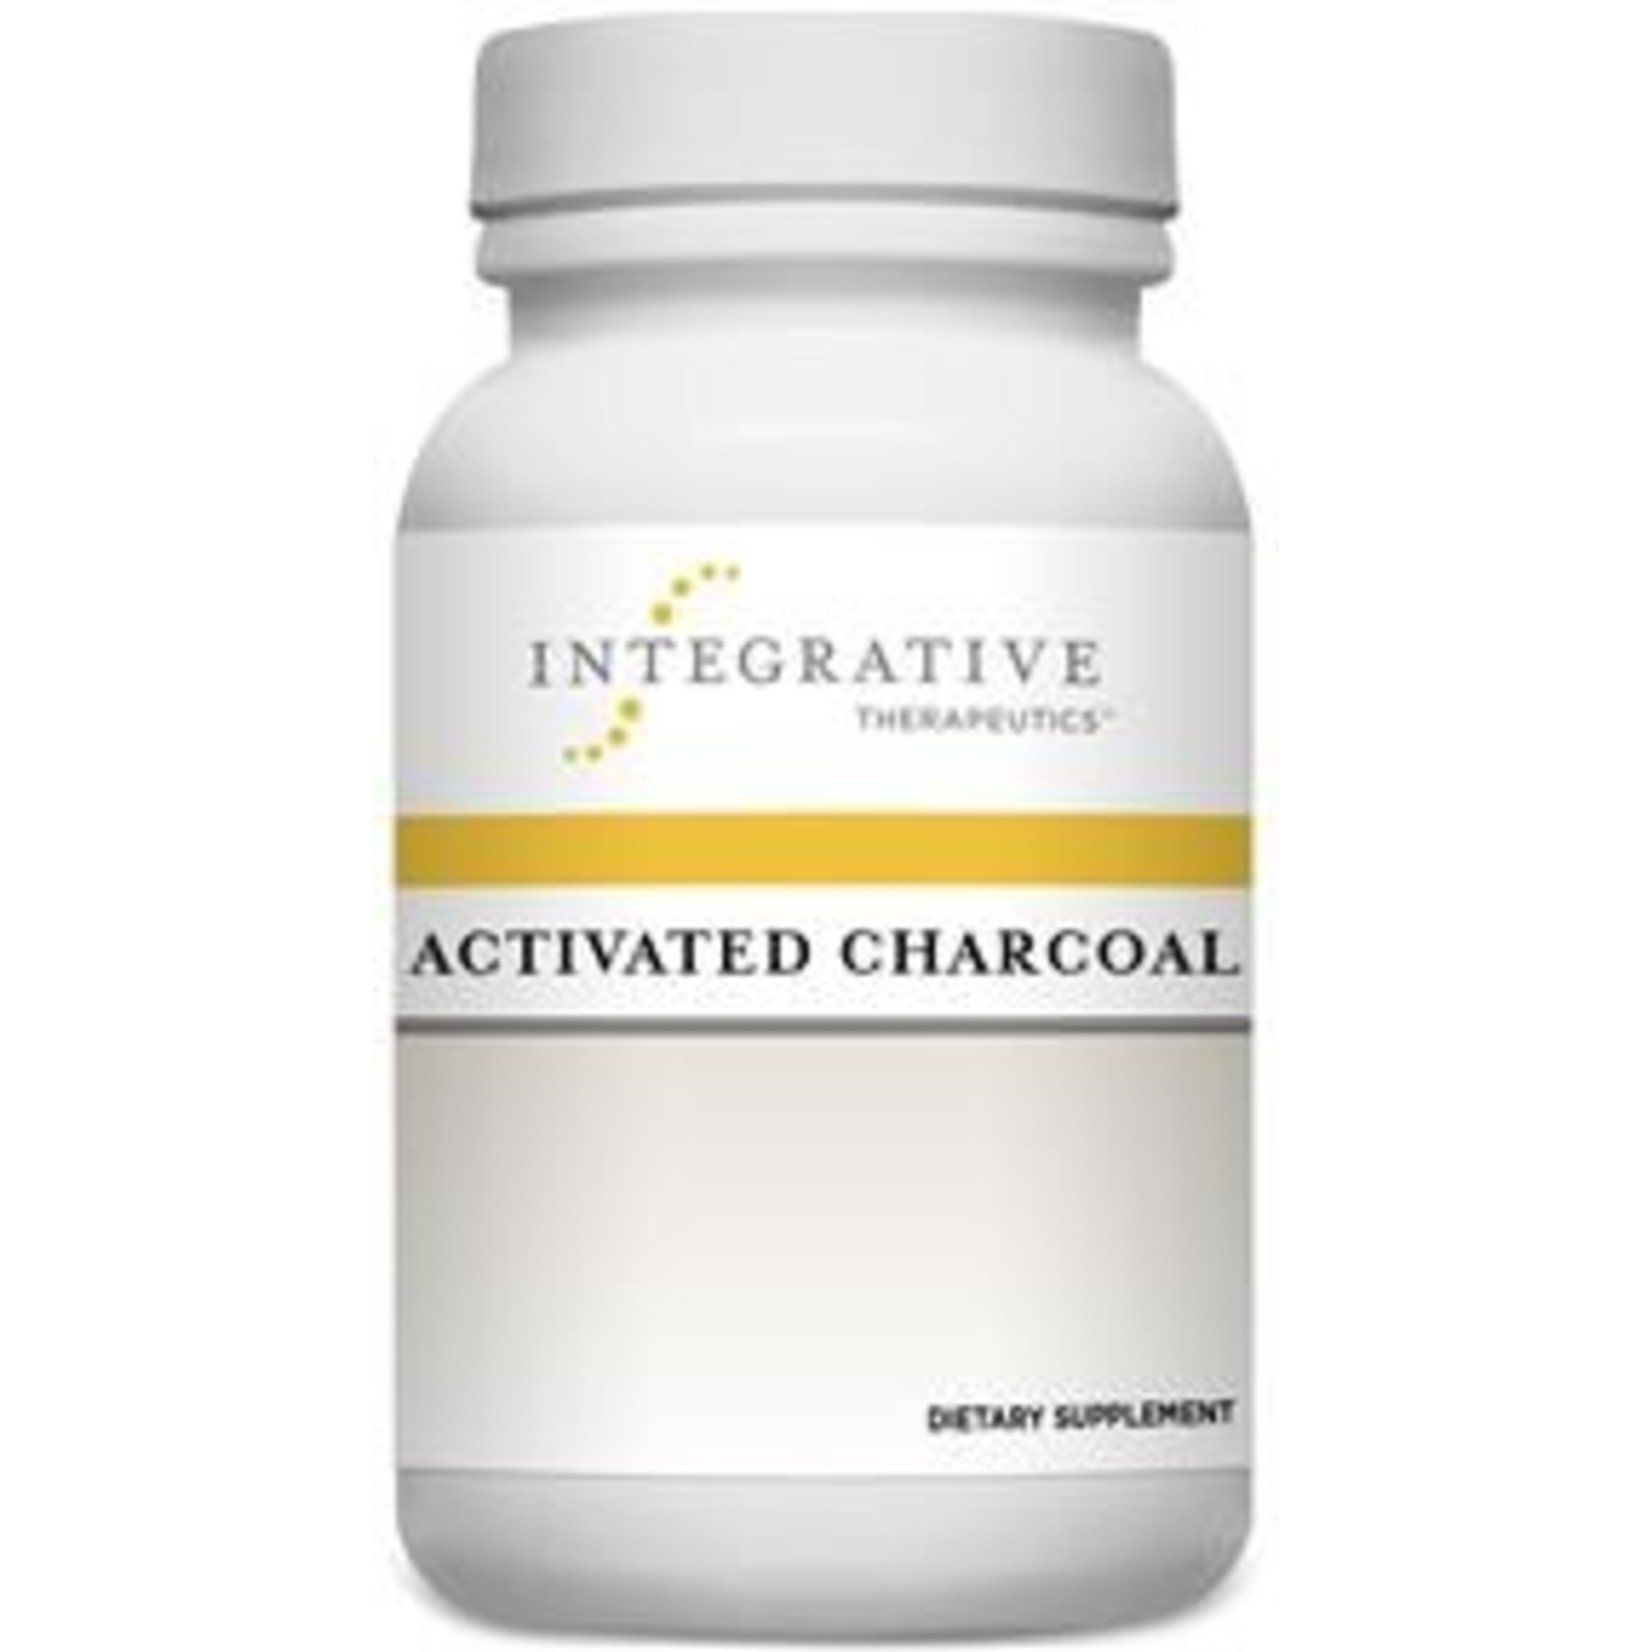 Integrative Therapeutics Integrative Therapeutics Activated Charcoal 100caps